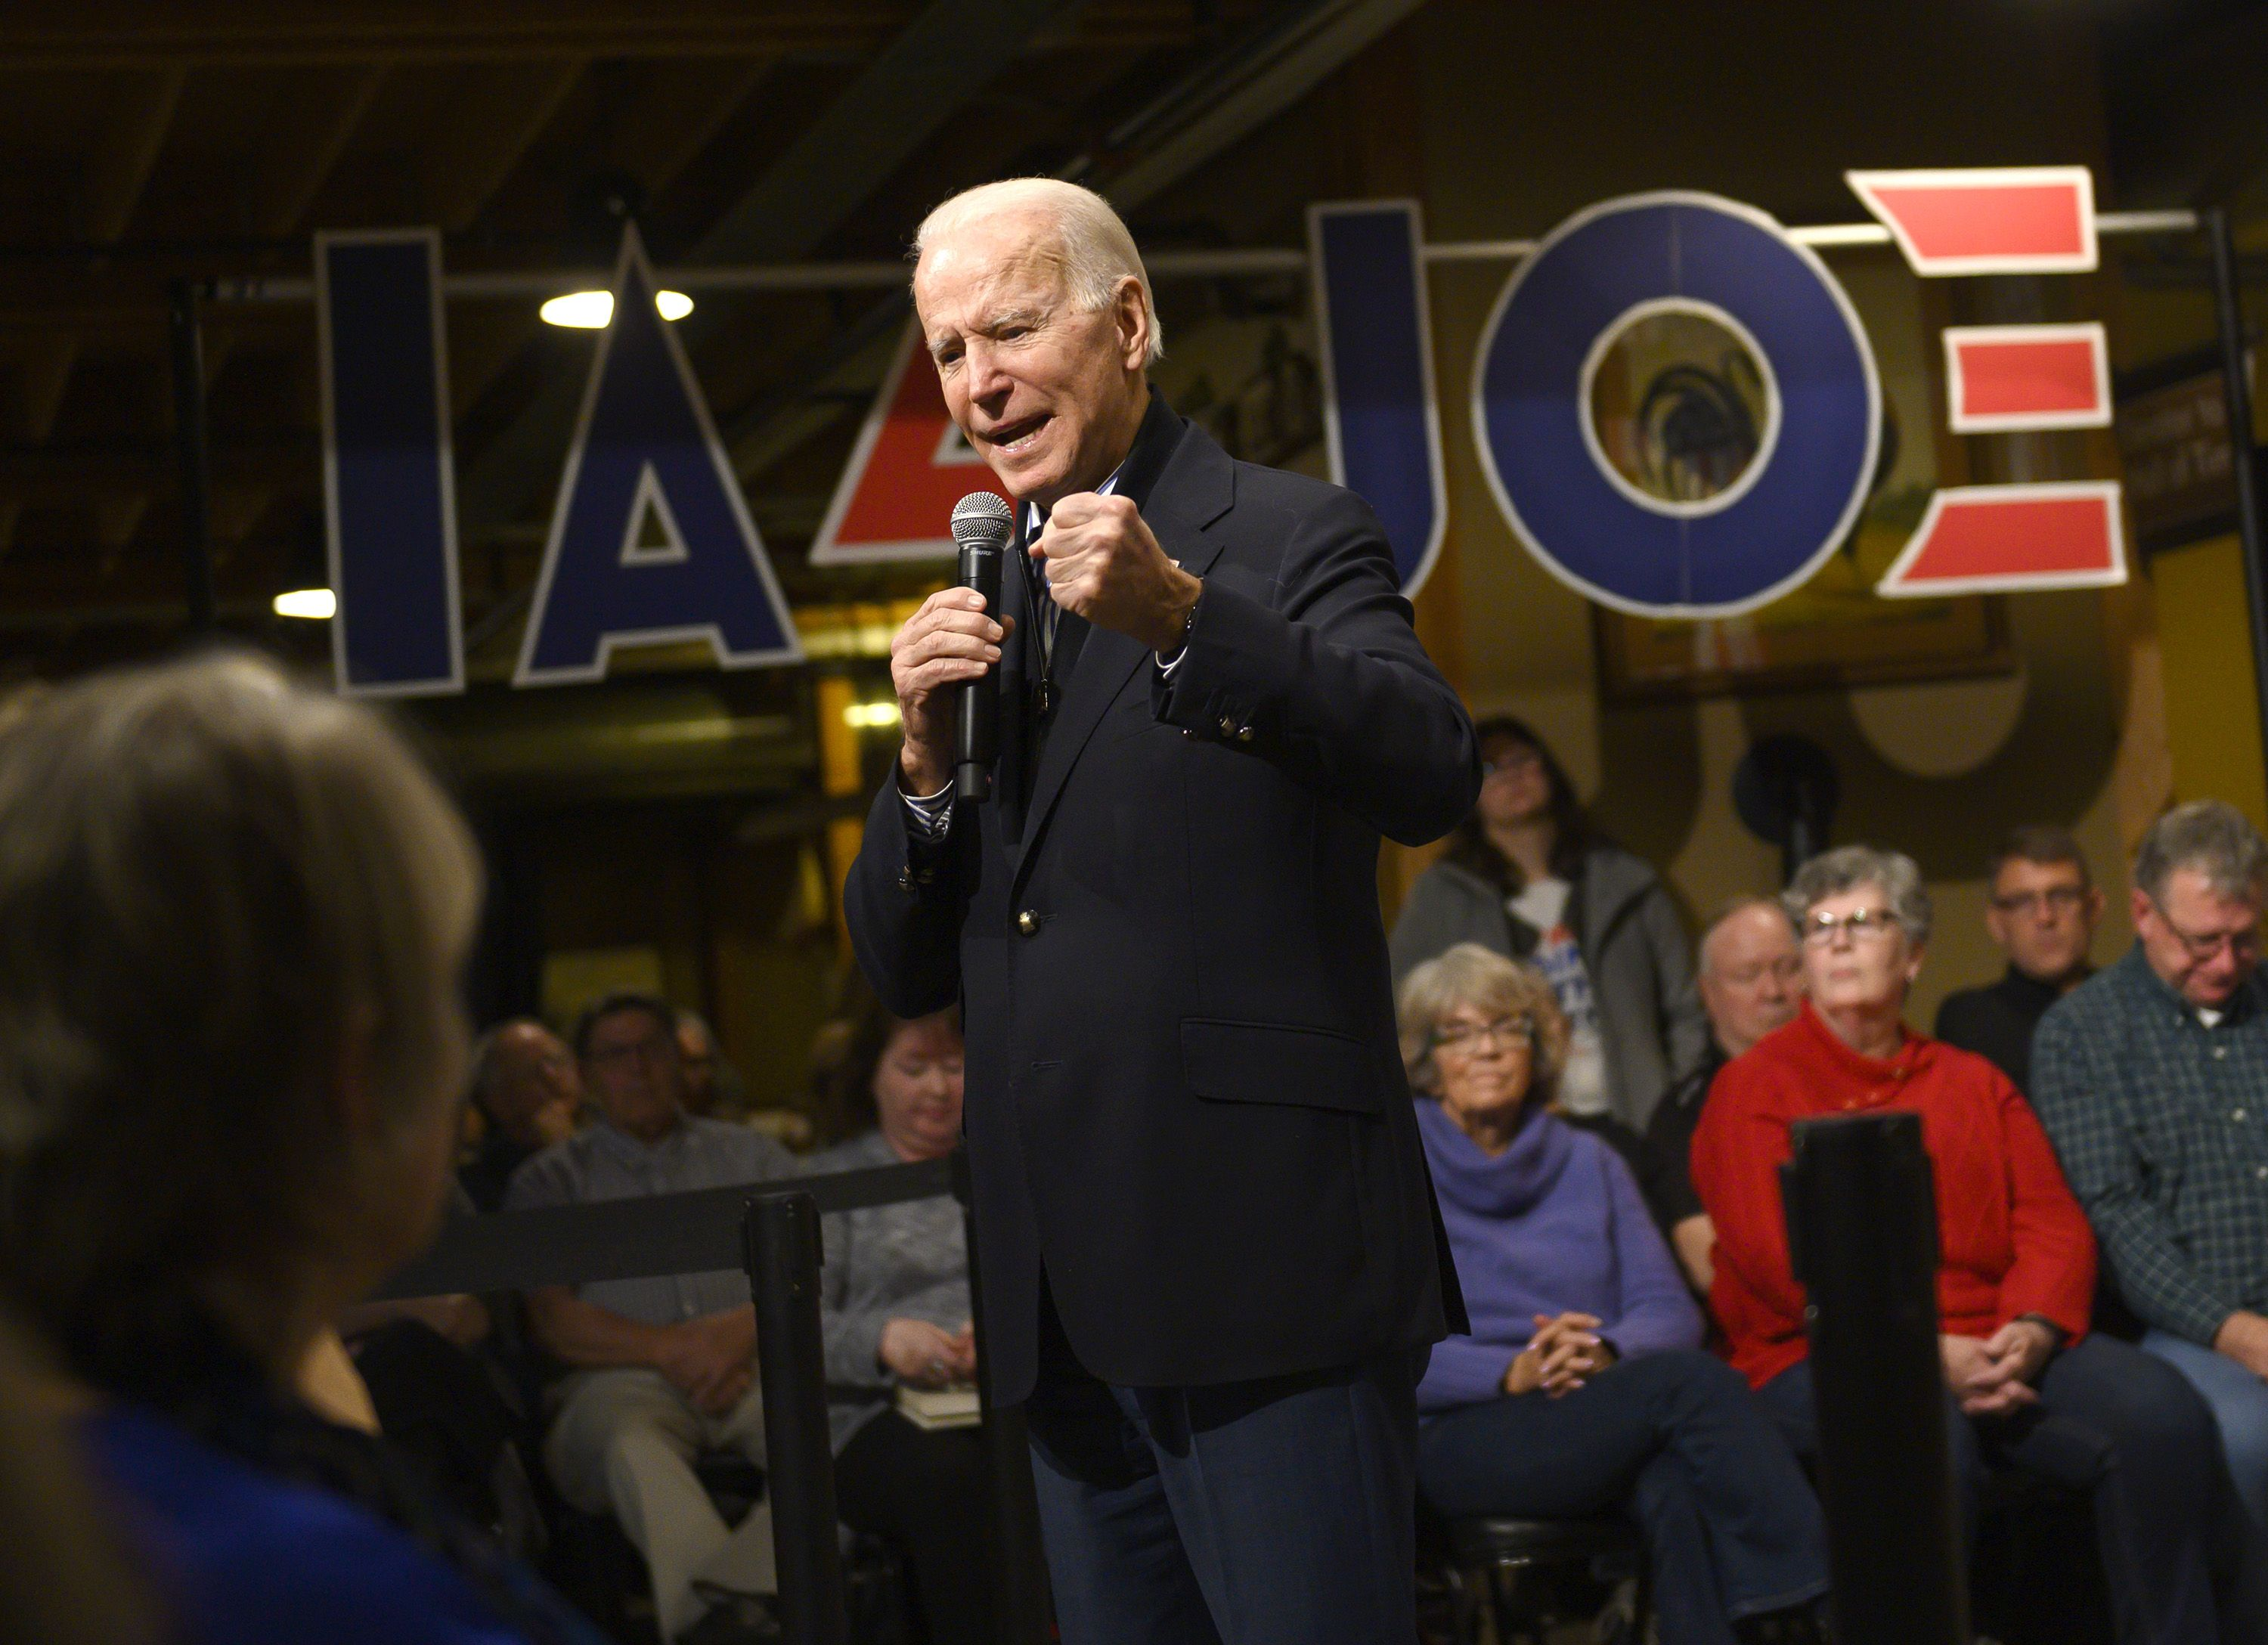 Biden Makes a Surge in Iowa After Early Stumbles Left Him Behind